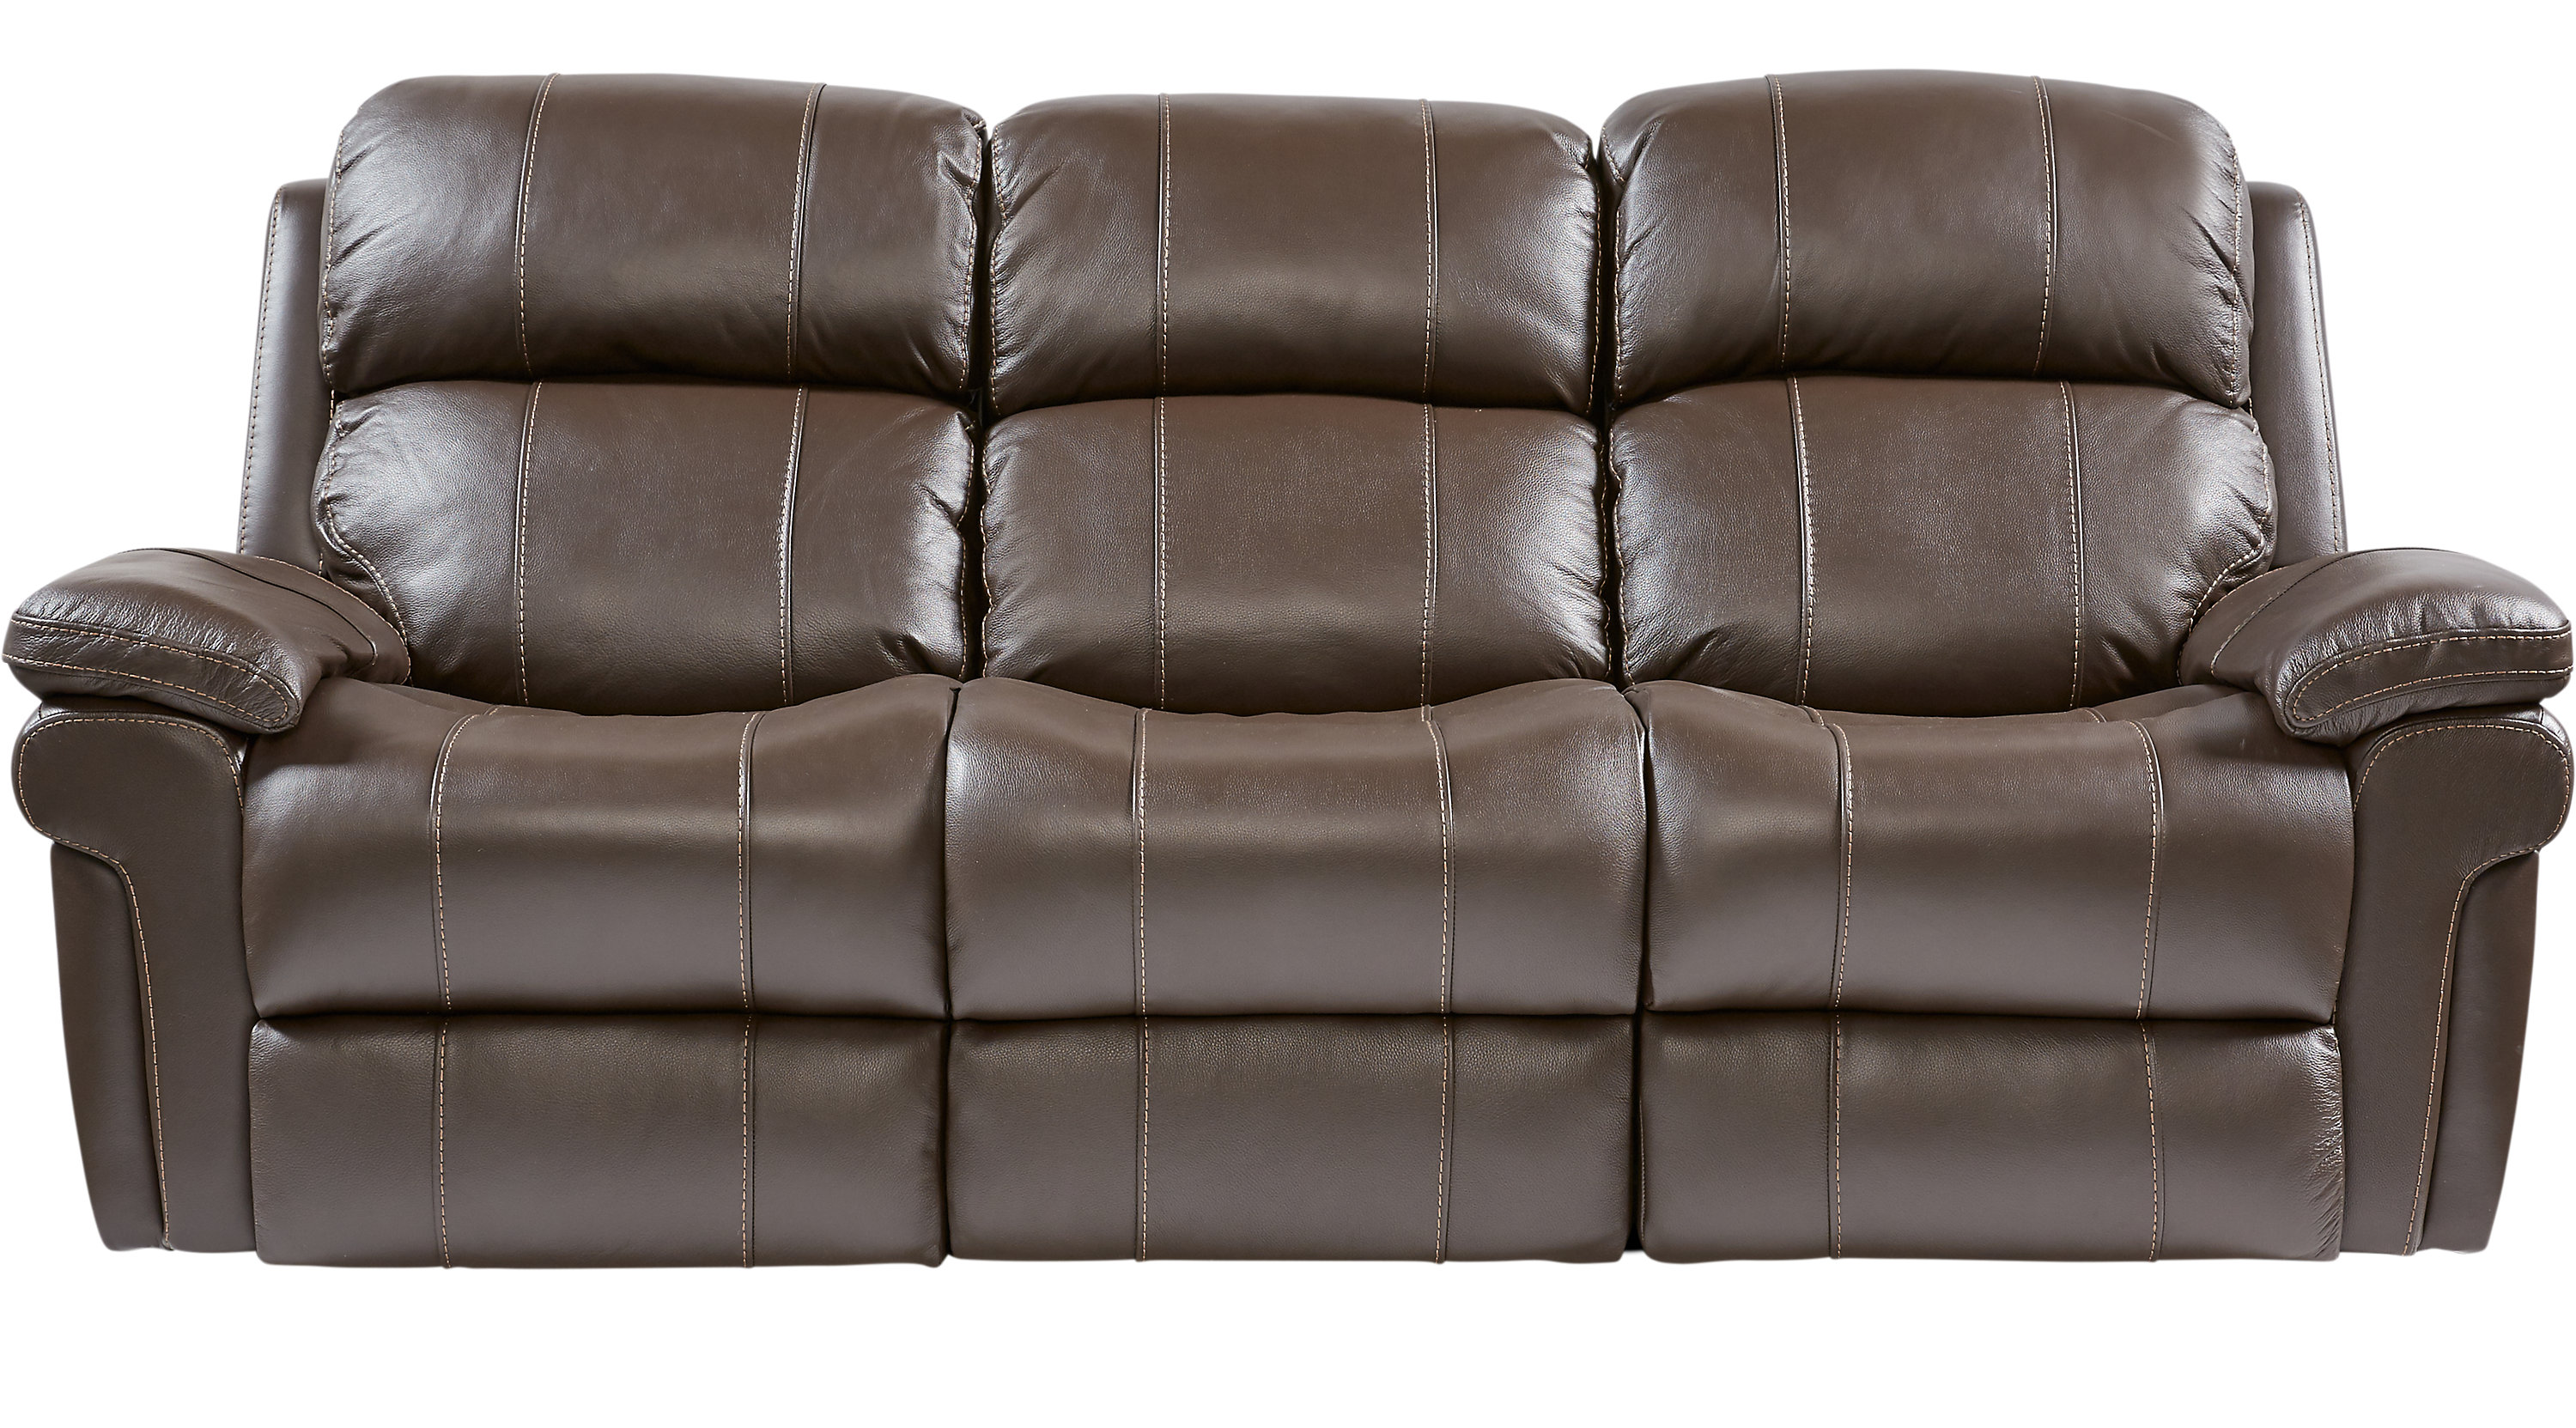 1 Trevino Chocolate Brown Leather Reclining Sofa Contemporary